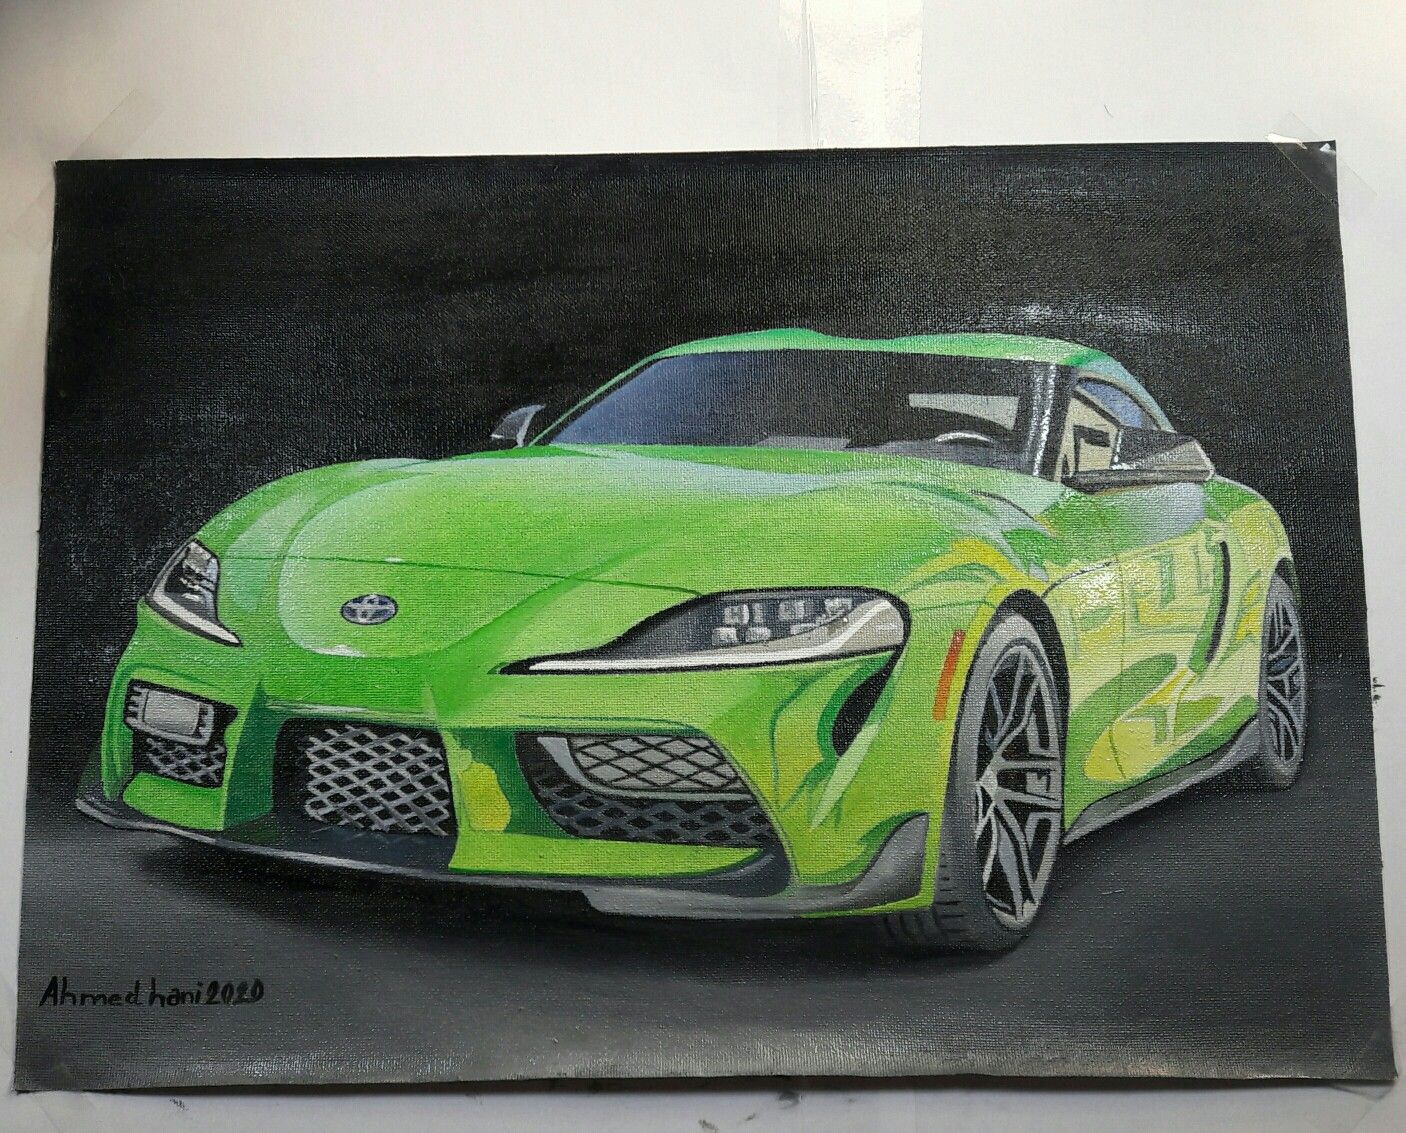 Drawing Toyota Supra رسم تويوتا سوبرا In 2020 Car Toyota Supra Sports Car